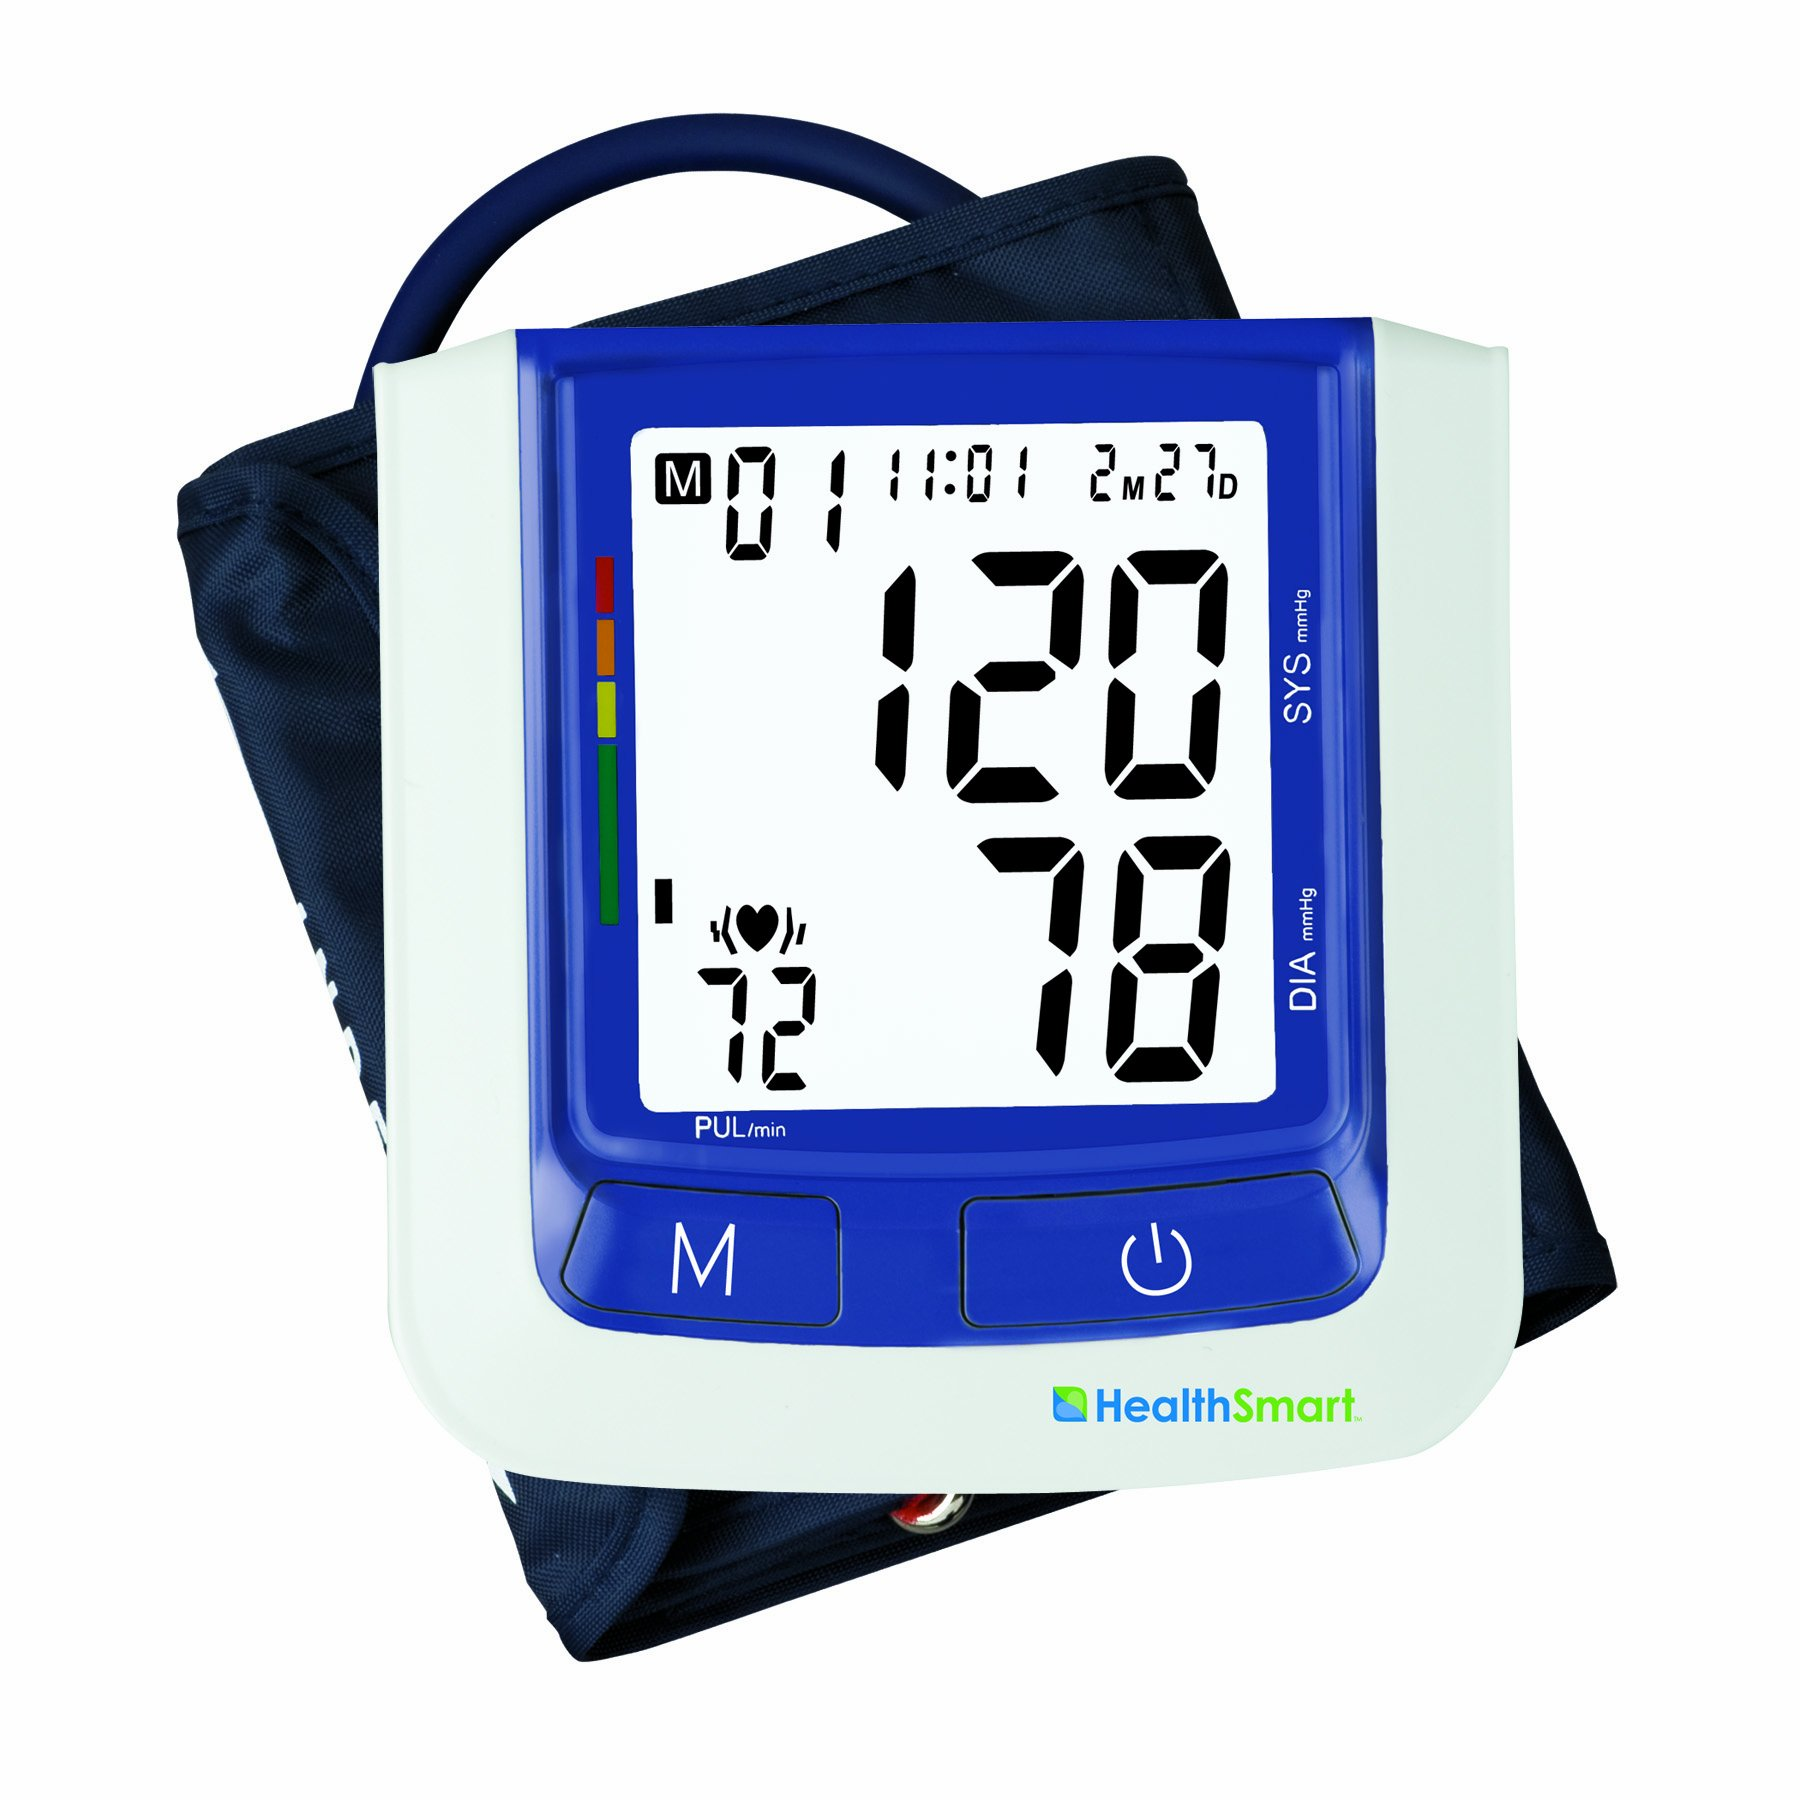 HealthSmart Premium Talking Automatic Digital Blood Pressure Monitor, Bilingual, Blue by HealthSmart